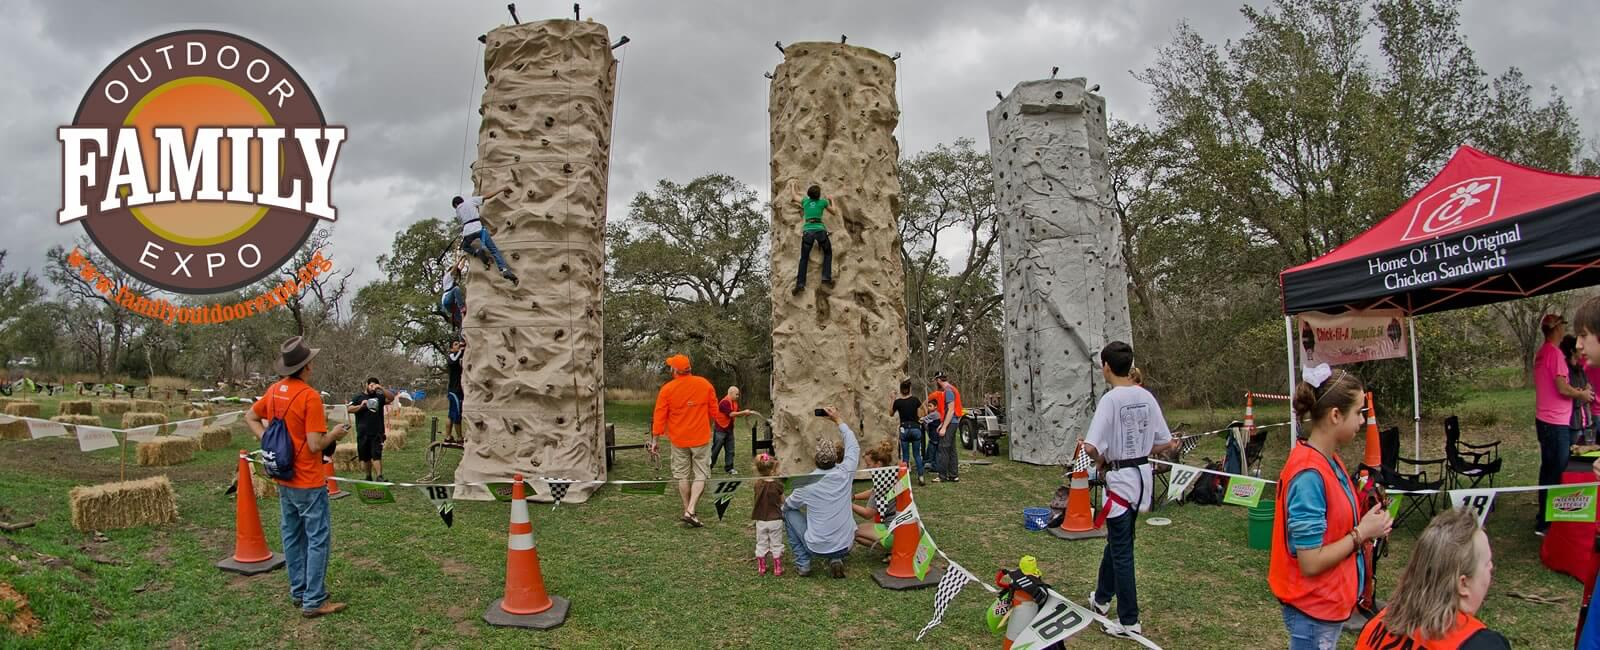 Rock Climbing at the Family Outdoor Expo